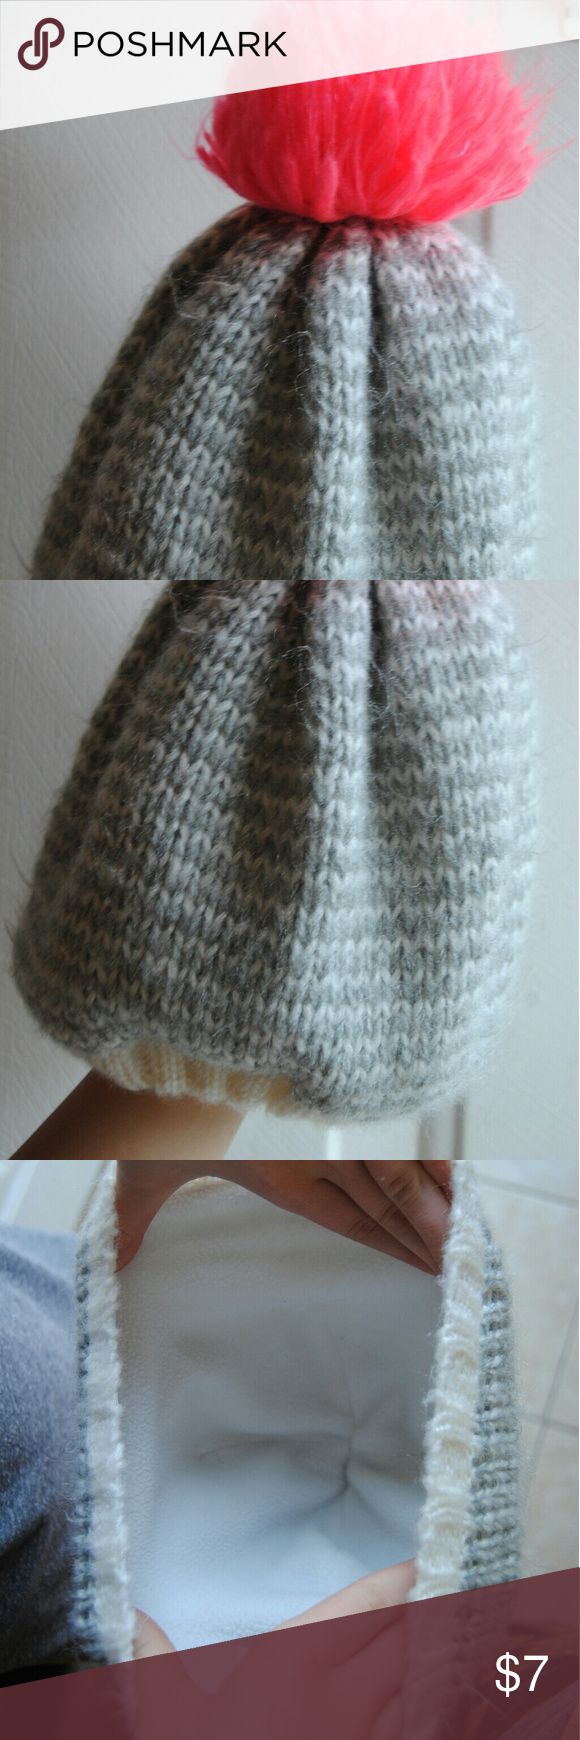 Girls winter hat Super cute girls winter hat. Never worn. No stains or snags. Accessories Hats